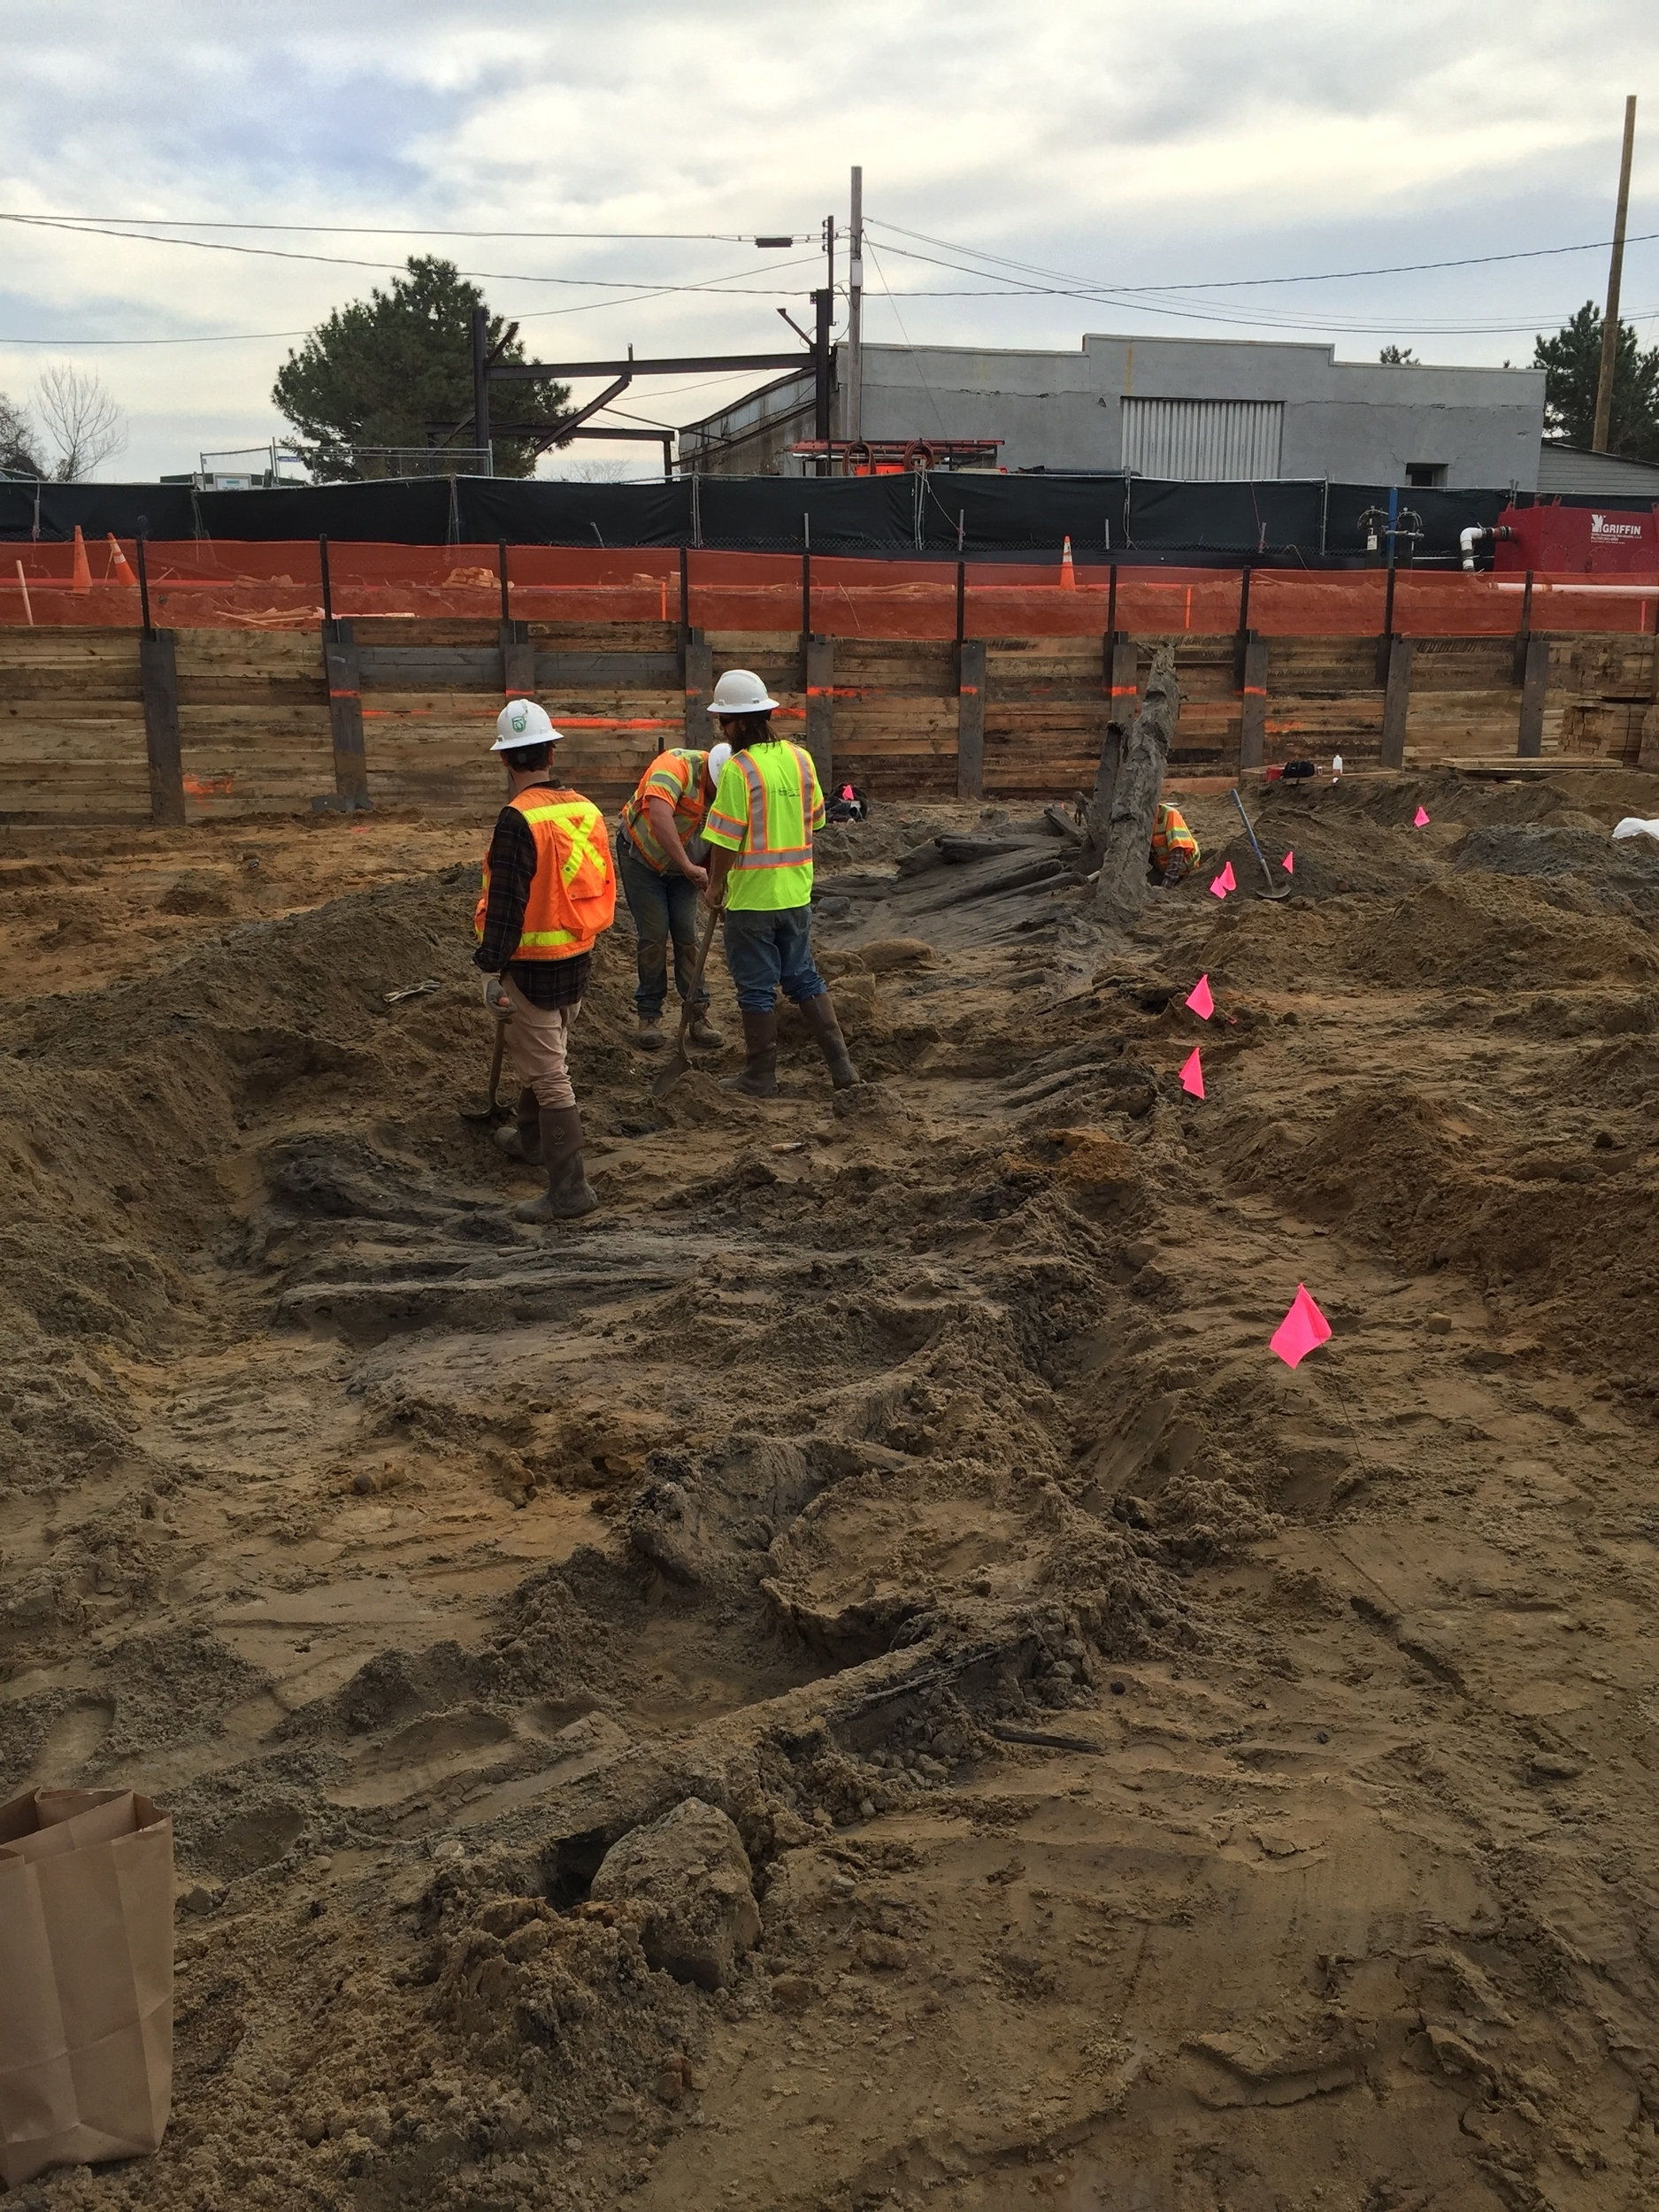 WSSI archeologists Vince Gallacci, Daniel Osborne, and Daniel Baicy work to uncover the ship's hull.